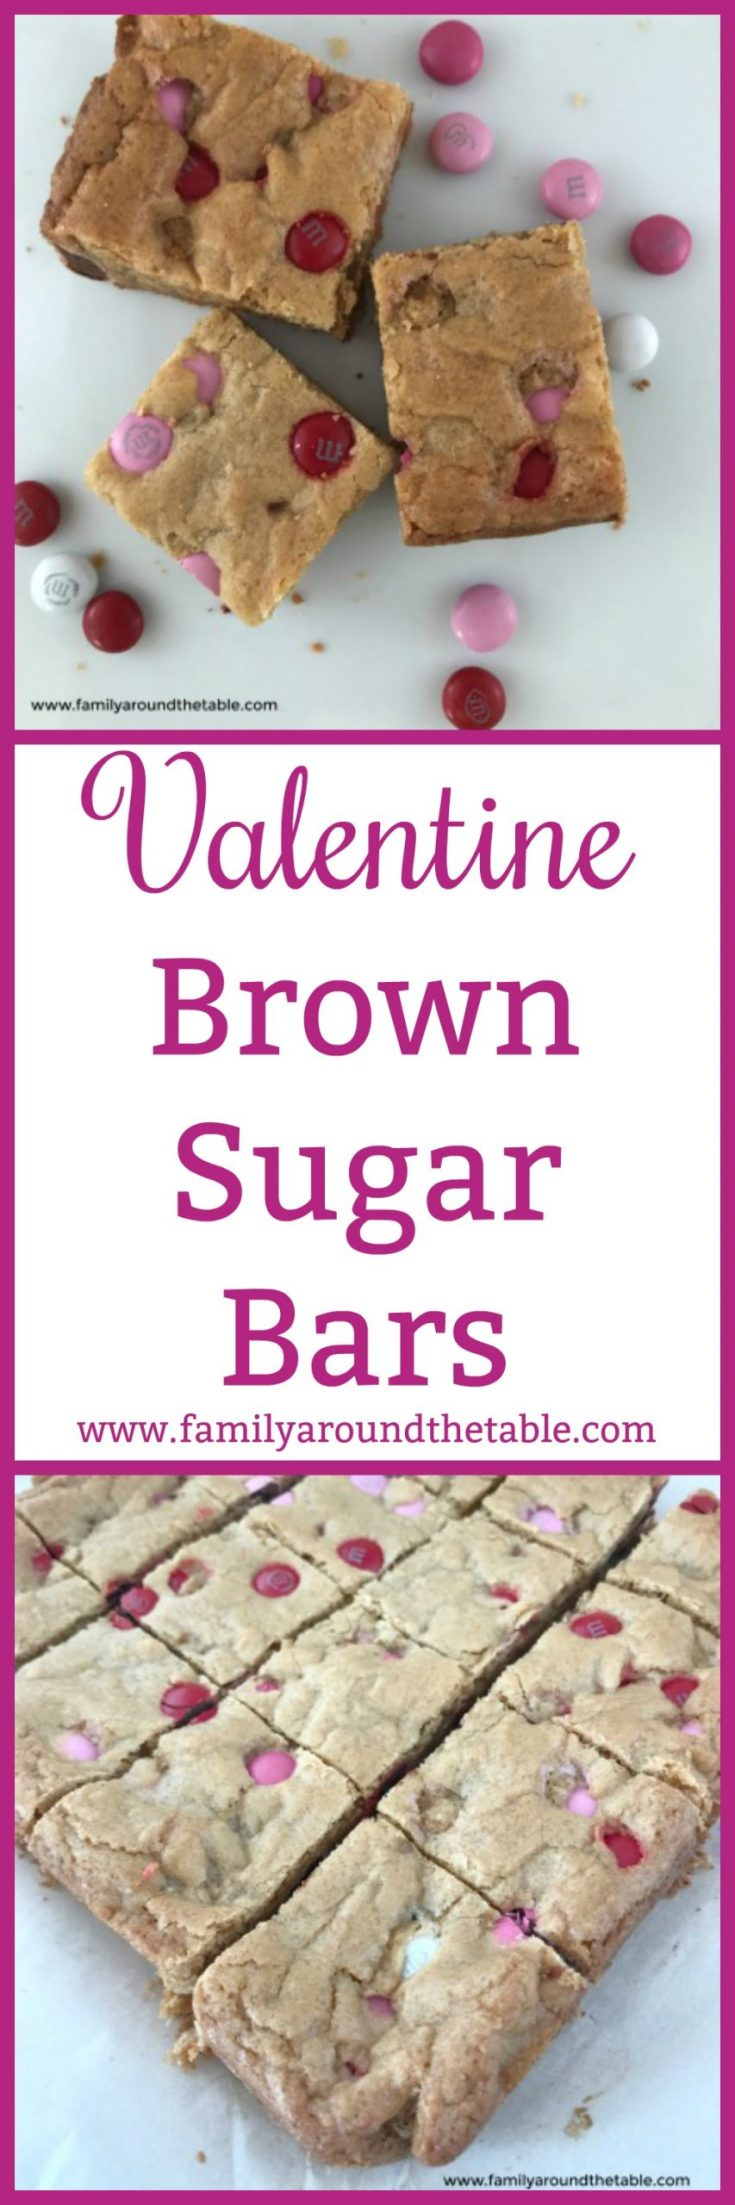 Valentine Brown Sugar Bars are a sweet treat for your sweetheart. Though they are delicious any time of year! #OurFamilyTable